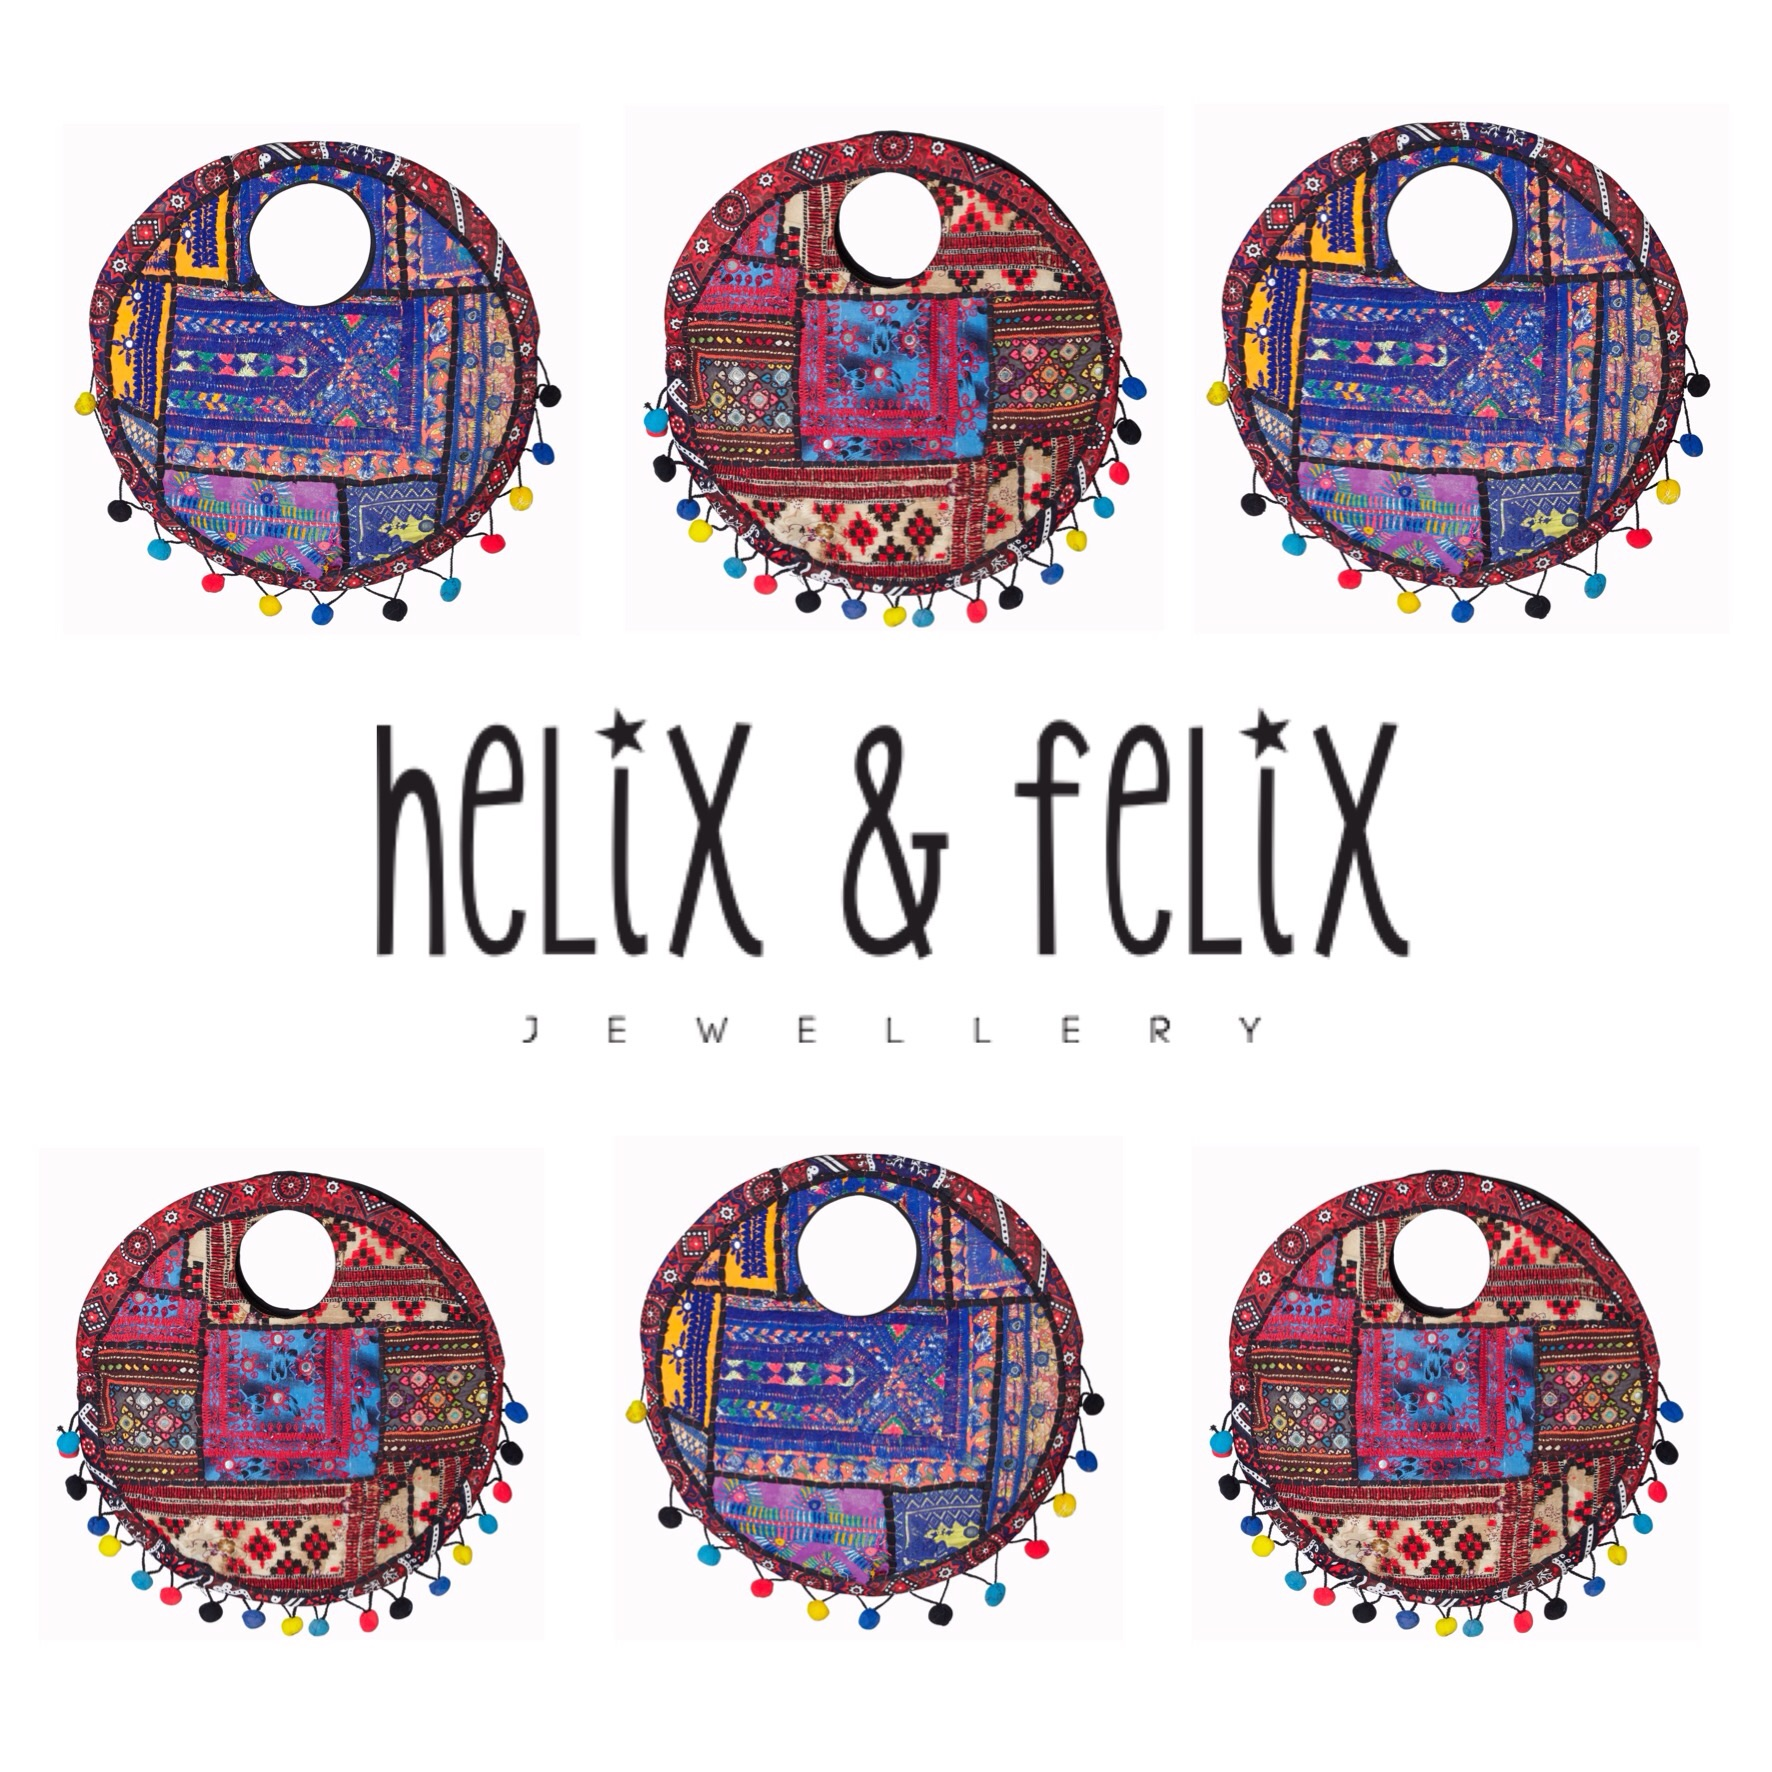 Helix and Felix Pom Pom Bags